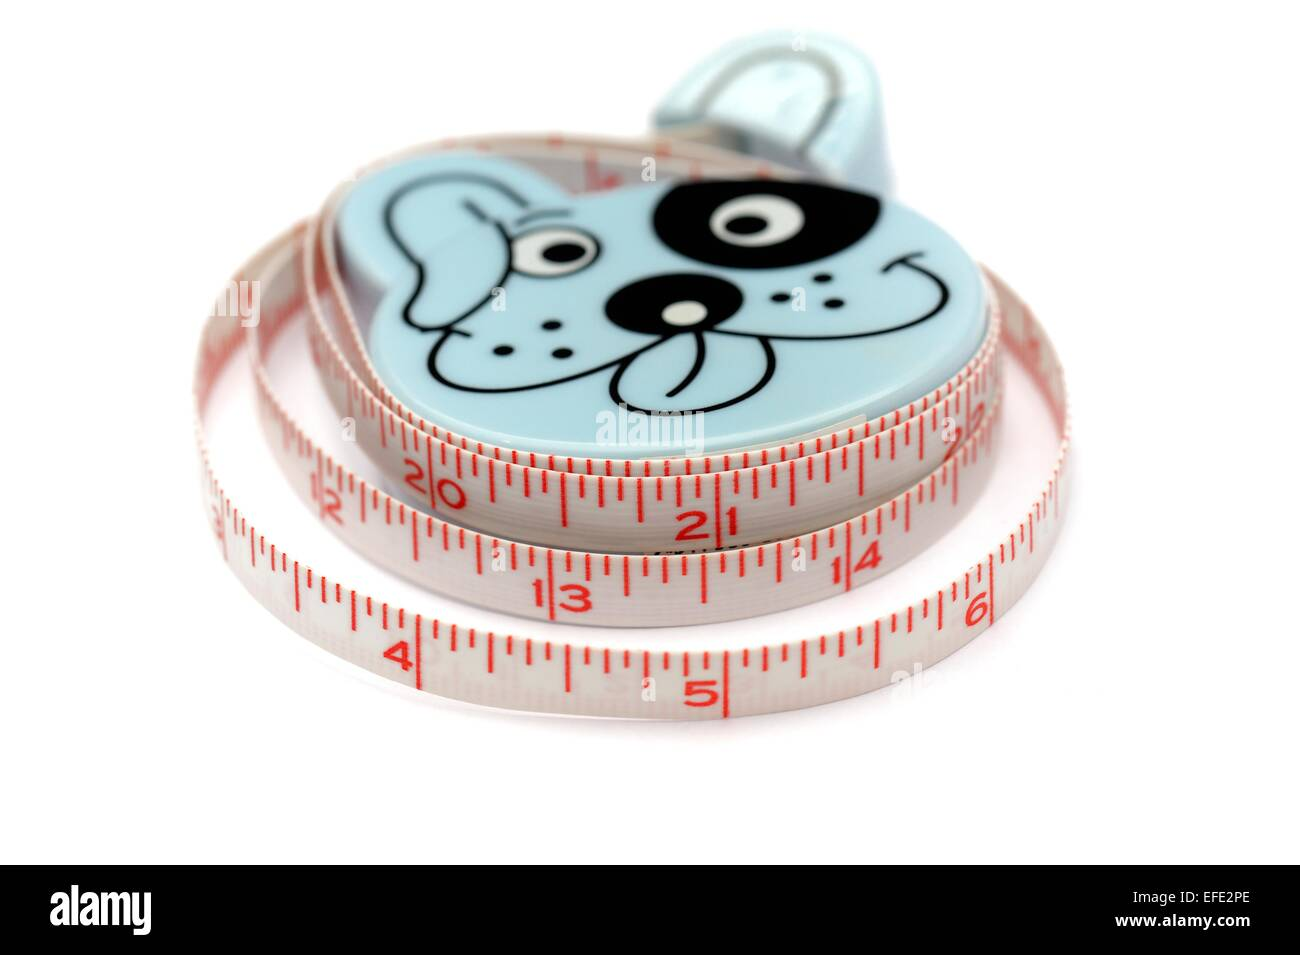 A dog tape measure in inches - Stock Image